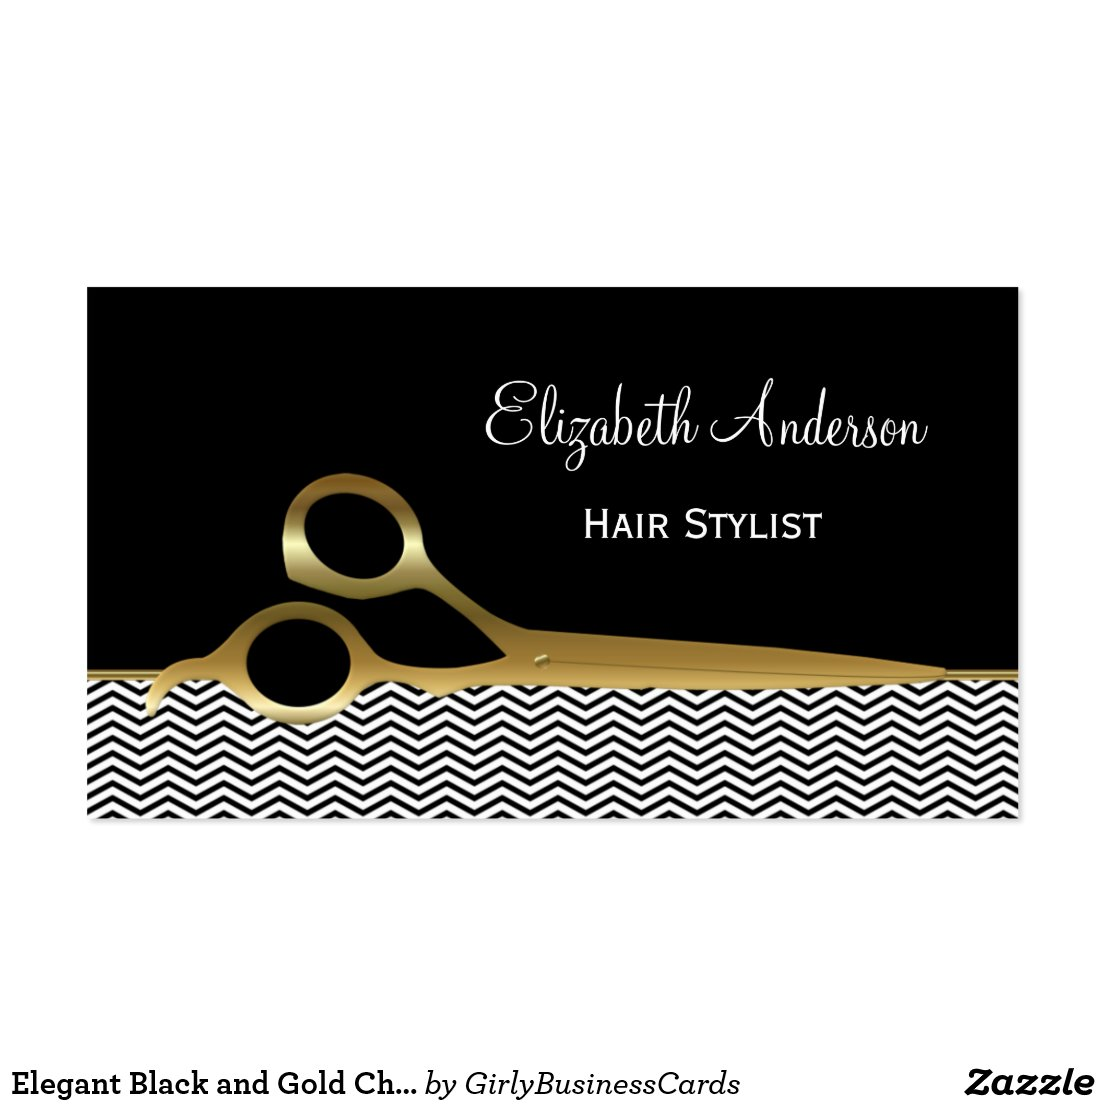 Hair stylist business card templates free bigking keywords and pictures gold chevrons hair salon hair stylist business card templates free fbccfo Choice Image